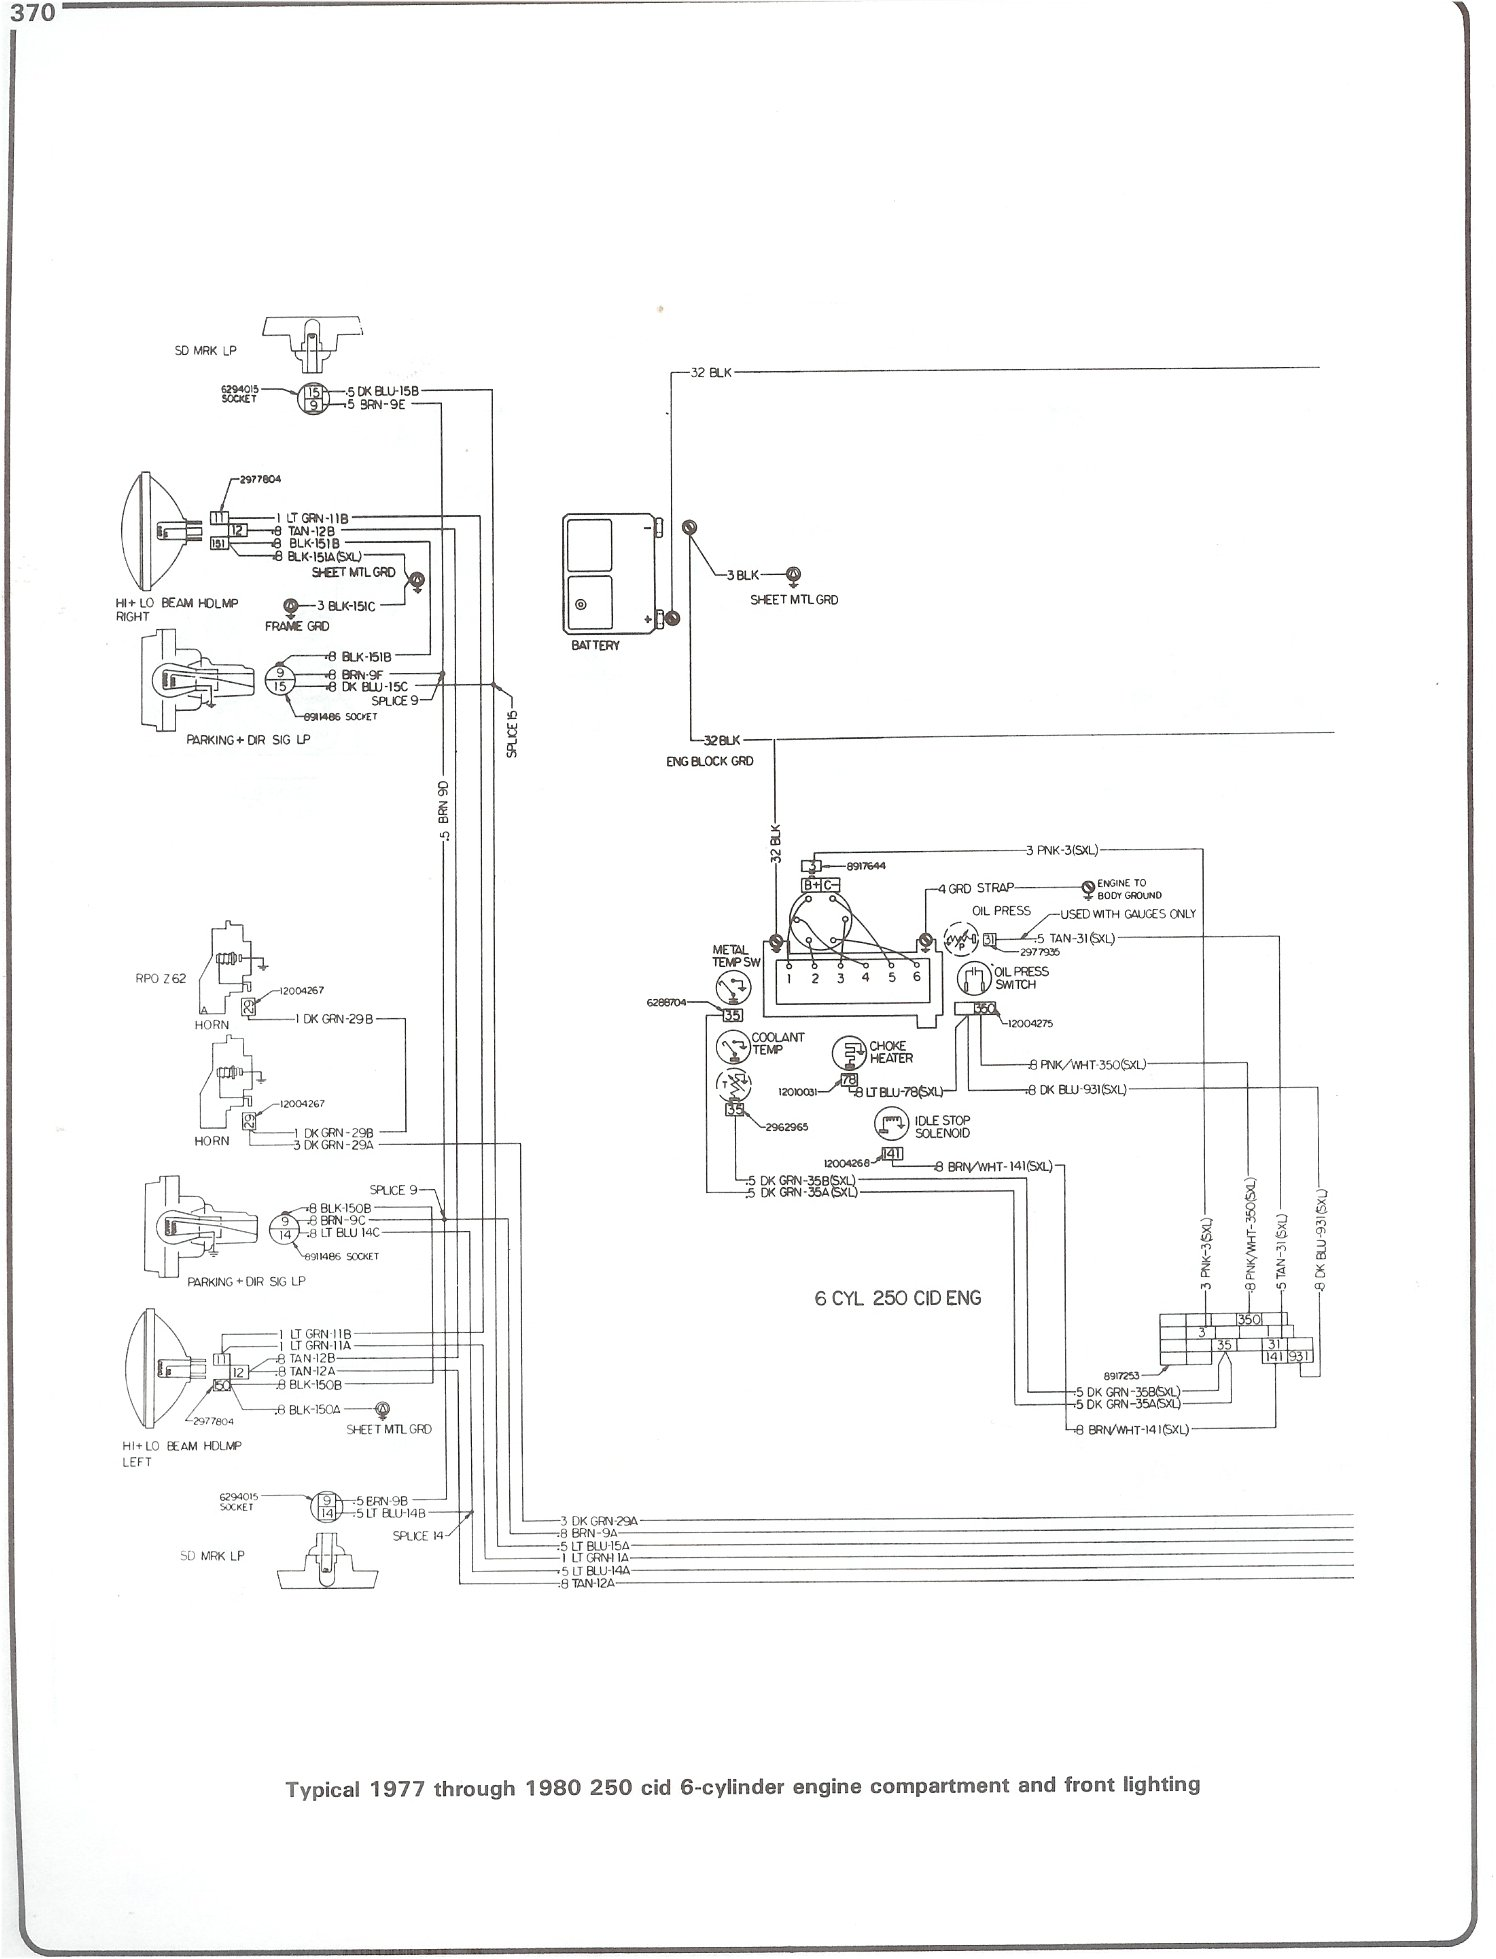 Wiper Motor Wiring Diagram 85 Ford | Wiring Diagram on wwf wiper motor diagram, 2005 bobcat s185 windshield wioer motor diagram, wiper wiring hi-low, ford wiper motor diagram, circuit diagram, briggs and stratton electrical diagram, wiper motor cover, wiper motor toyota, front bumper assembly diagram, solenoid switch diagram, wiper switch diagram, wiper motor cable, gm wiper motor diagram, wiper motor parts, vacuum wipers diagram, wiper washer motor, wiper motor wire, wiper motor relay diagram, wiper motor power supply, windshield wiper motor diagram,